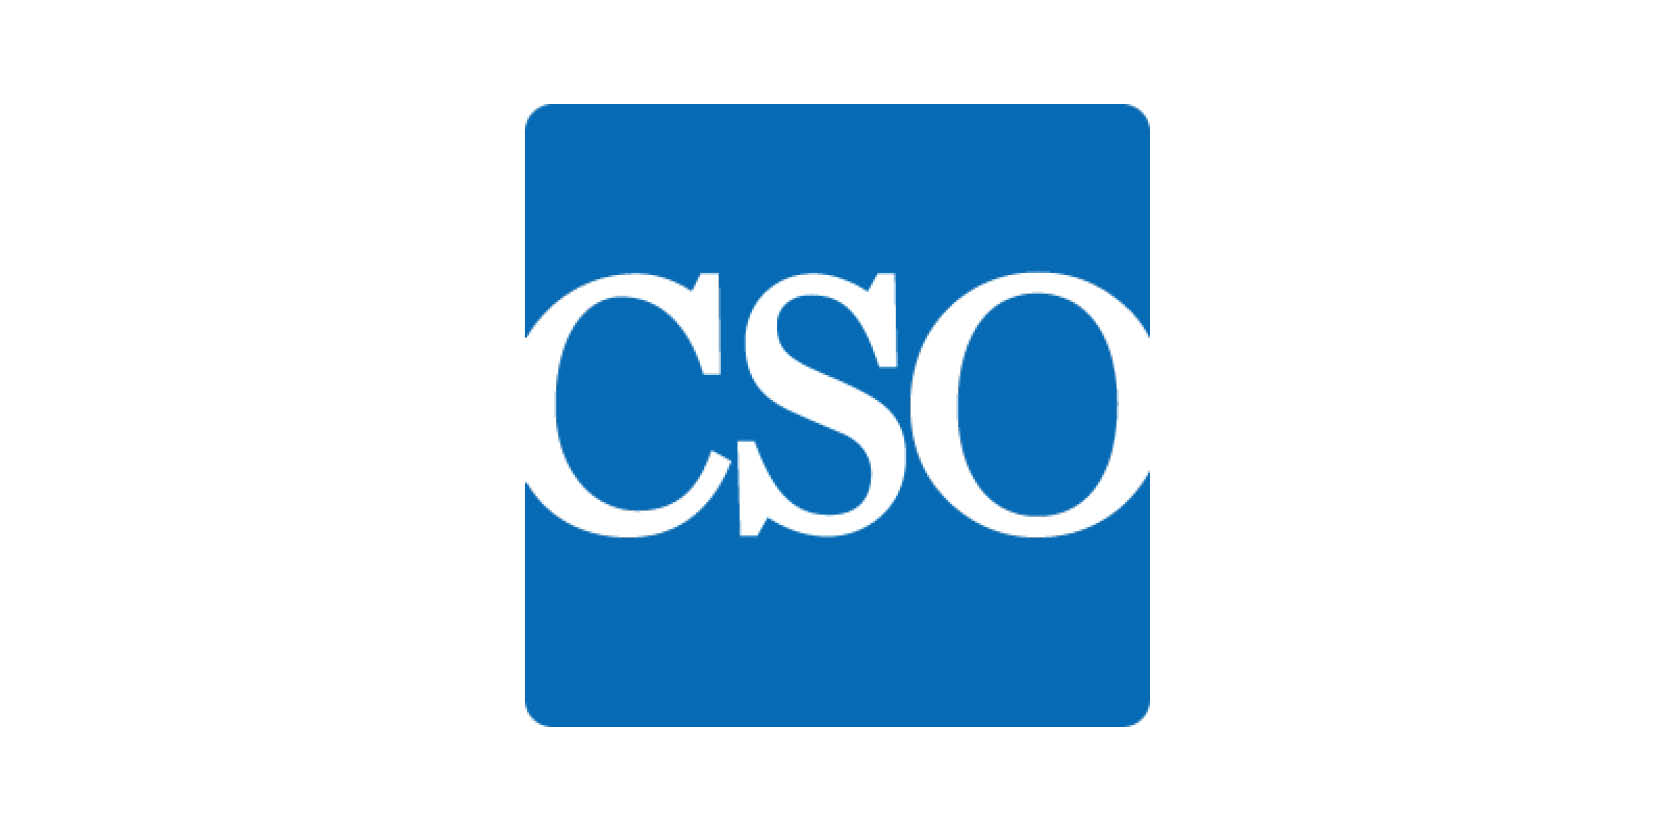 CSOOnline: Merging firms appealing targets for attackers